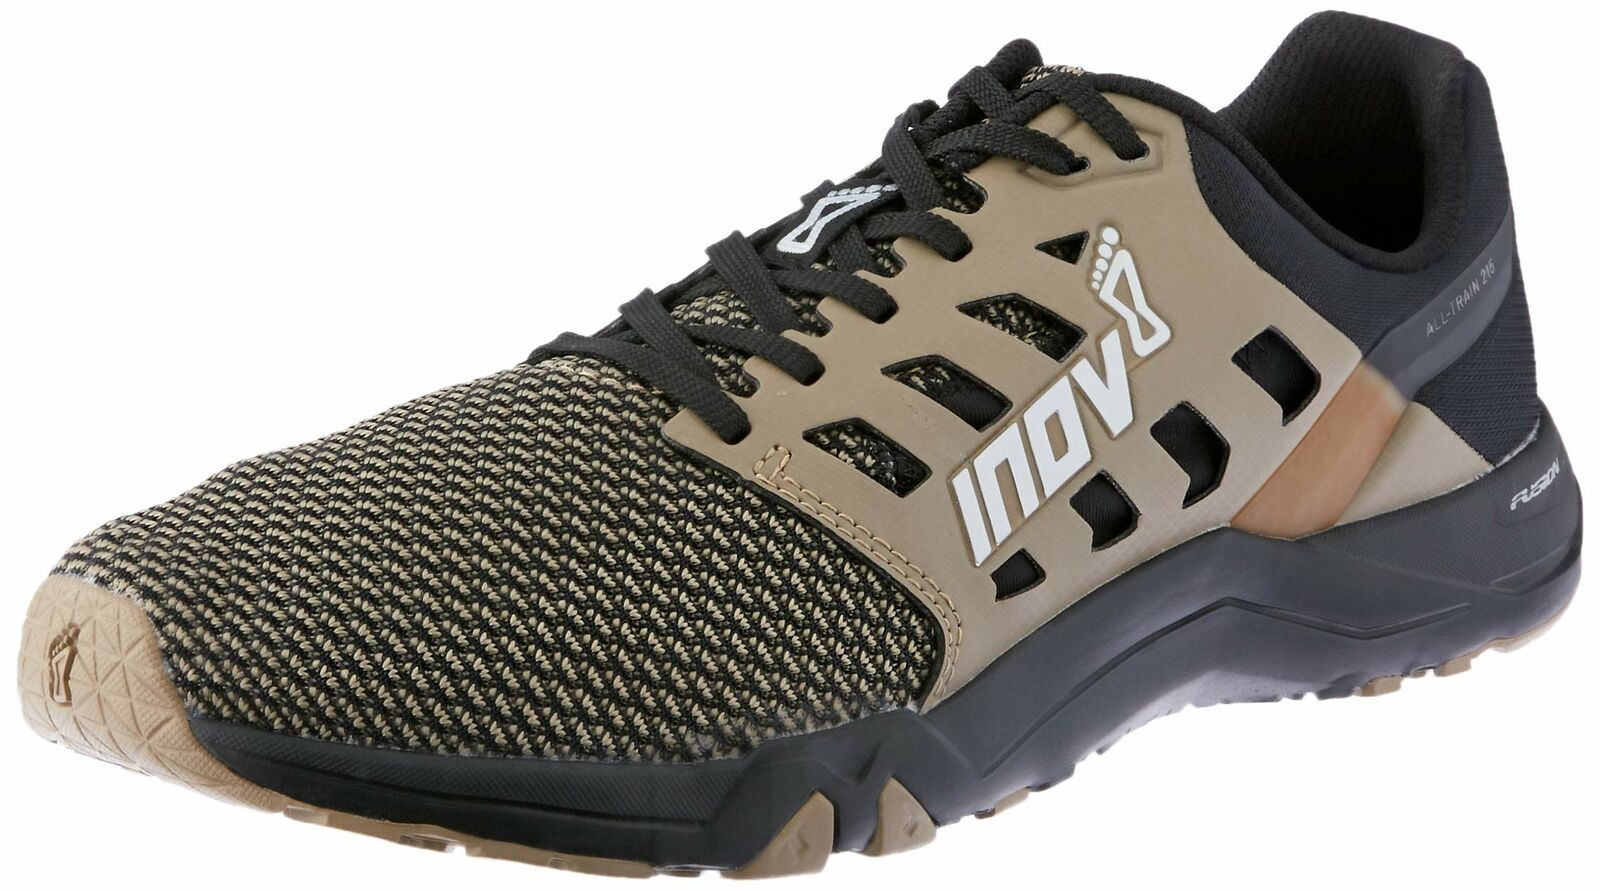 Inov-8 Mens All Train 215 Knit   Lightweight Cross Training Athletic shoes   for